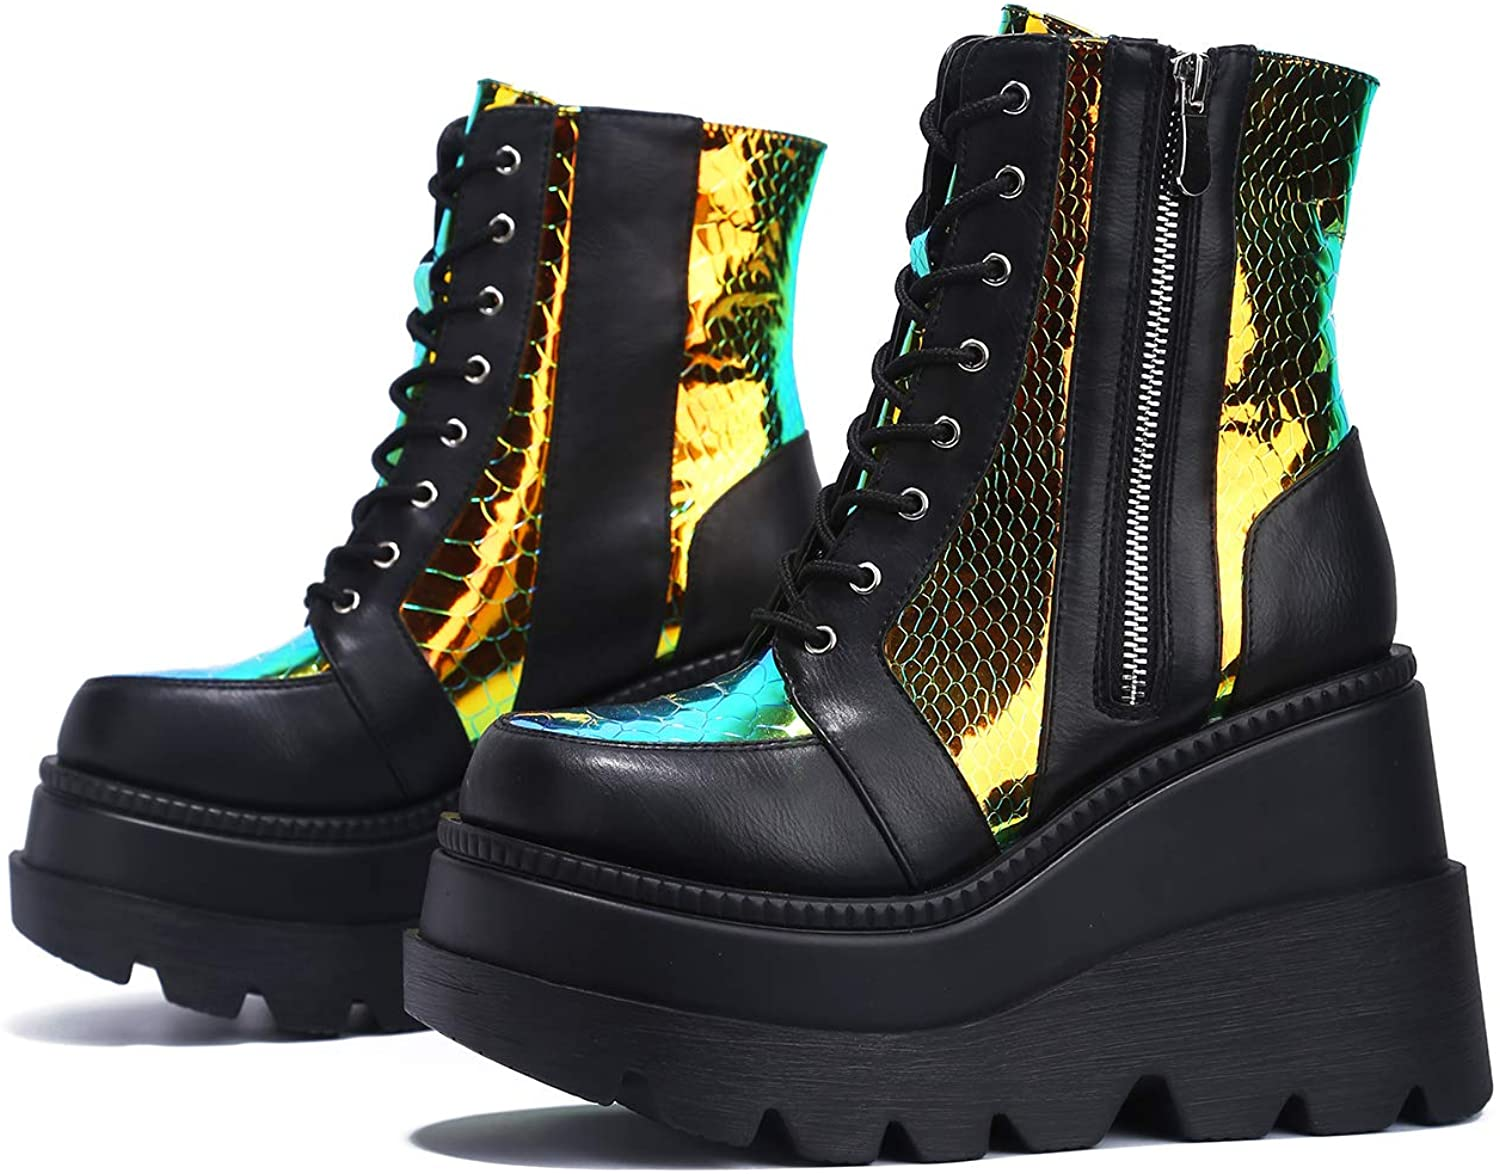   Cape Robbin Radio Holographic Platform Ankle Boots with Chunky Block Heels for Women   Ankle & Bootie